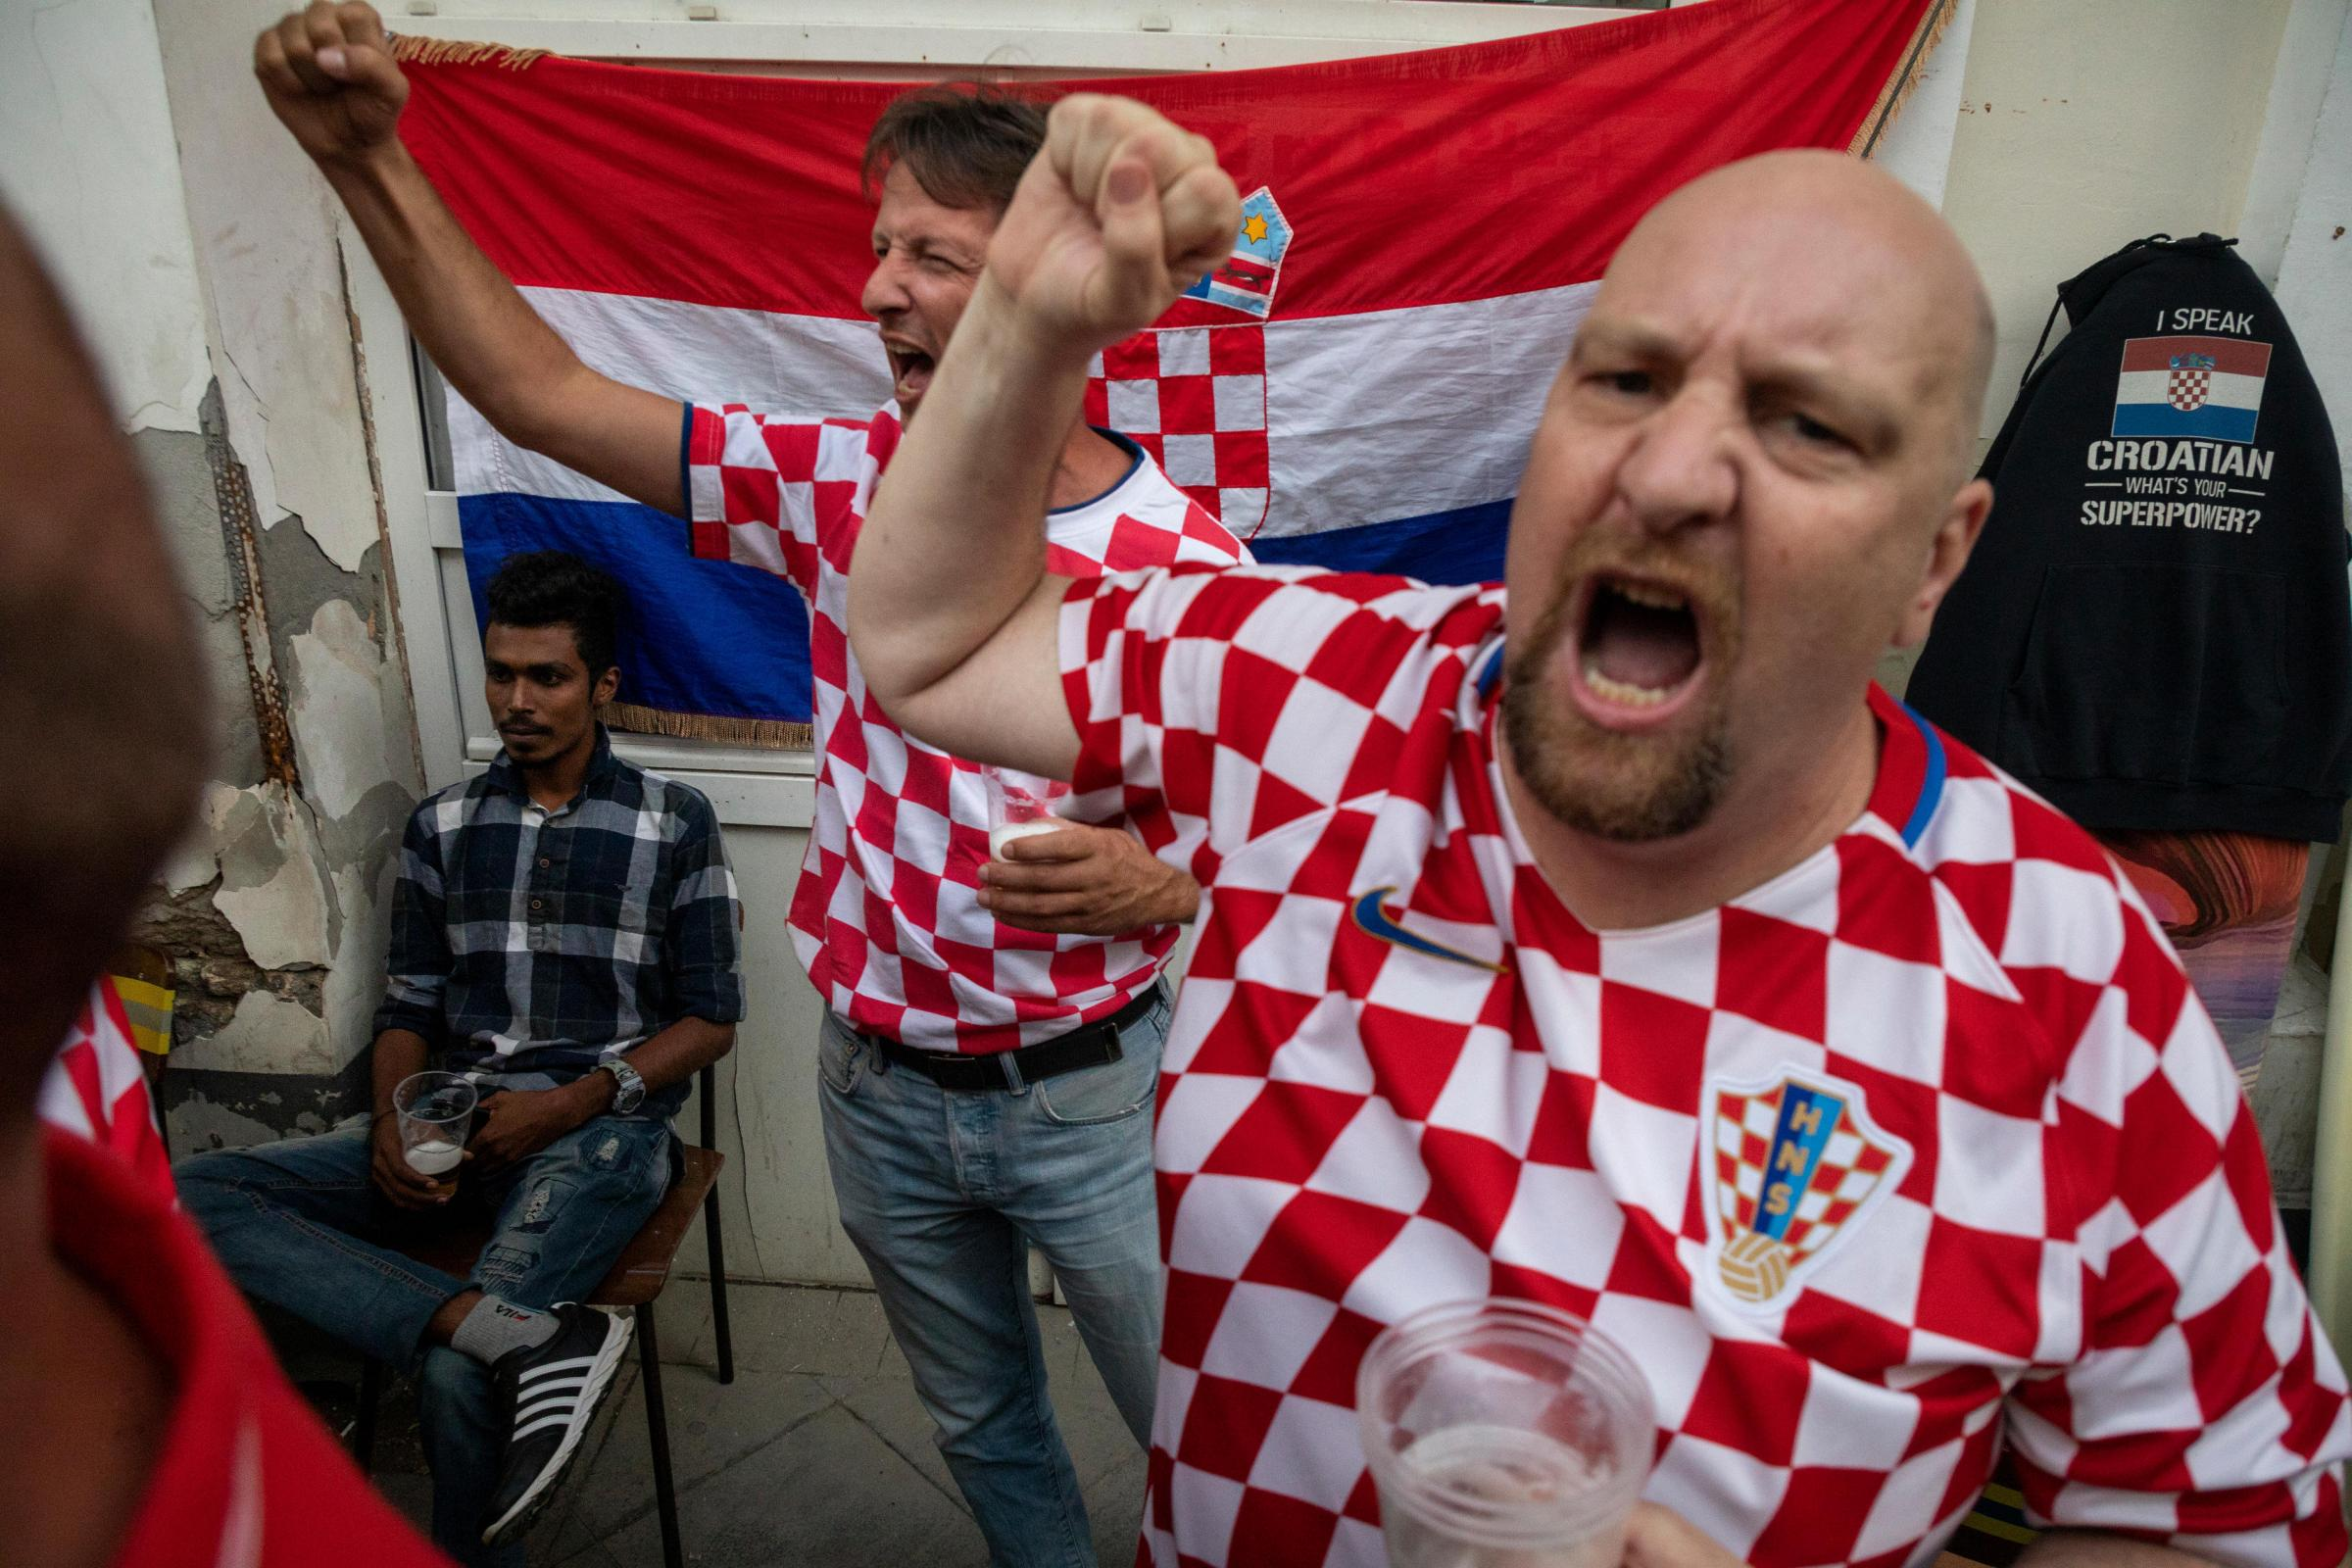 Croatian football fans cheer before the England game